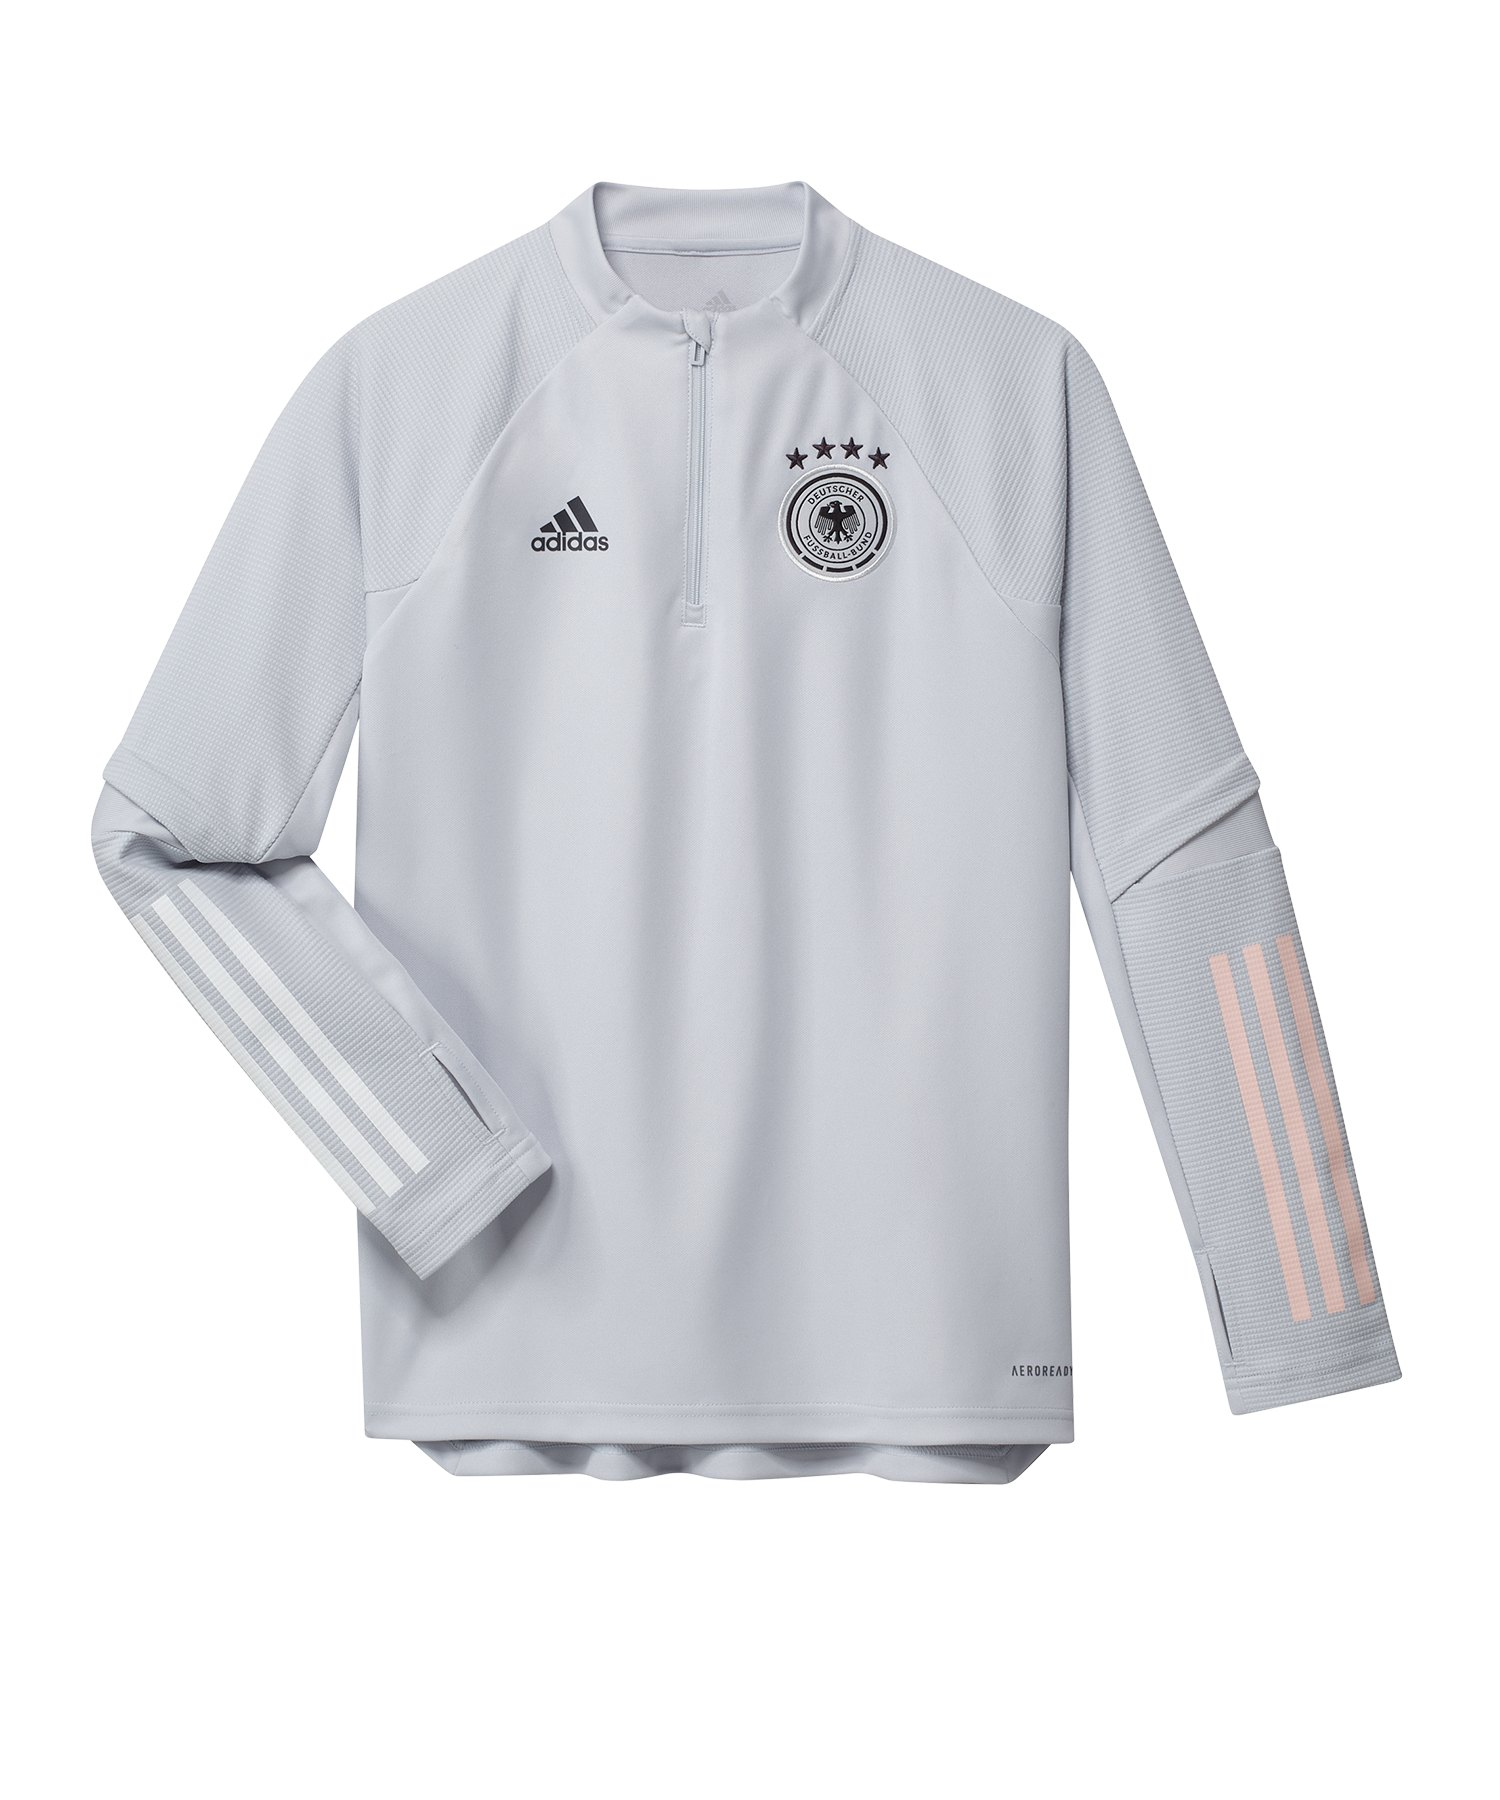 adidas DFB Deutschland Trainingstop Kids Hellgrau - grau